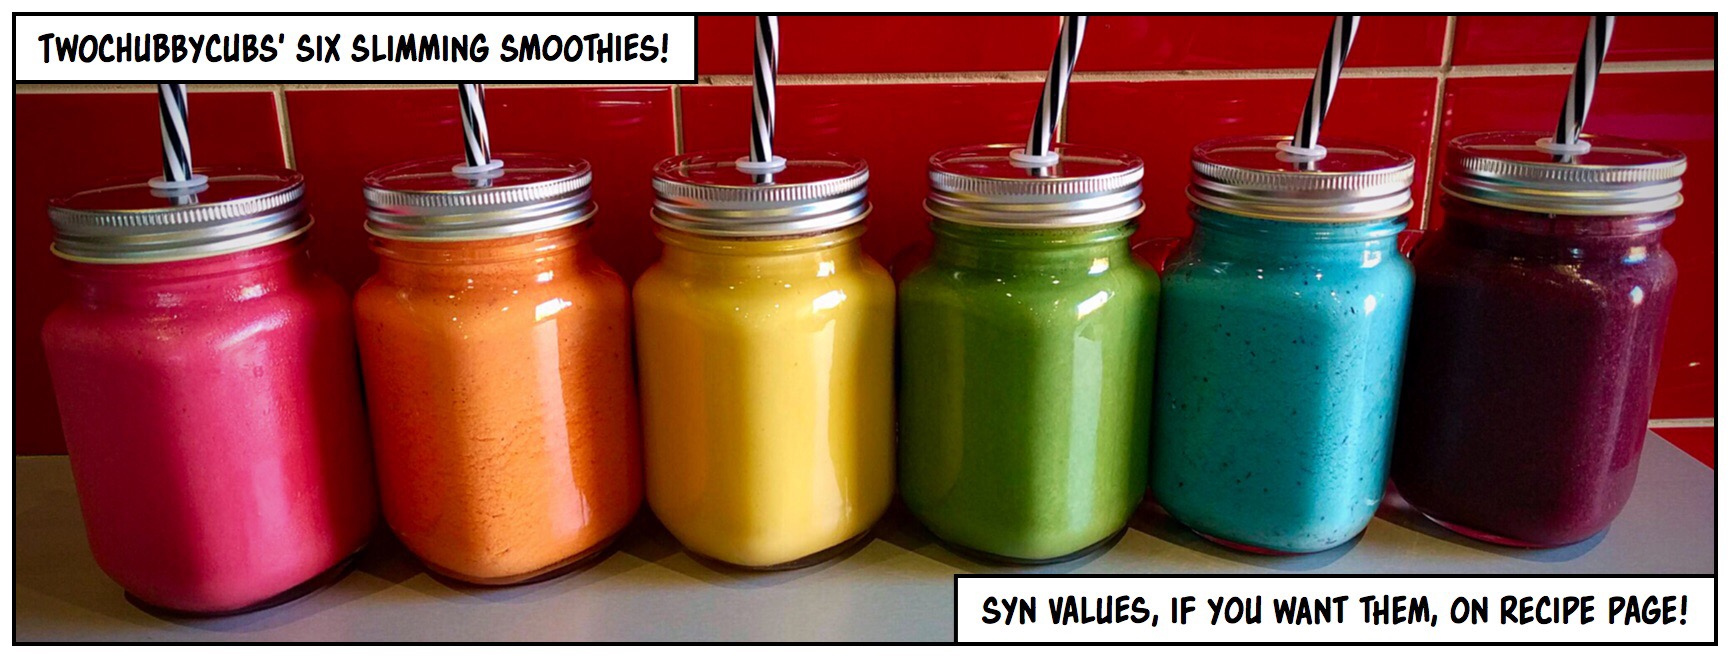 Six Slimming Smoothies Twochubbycubs